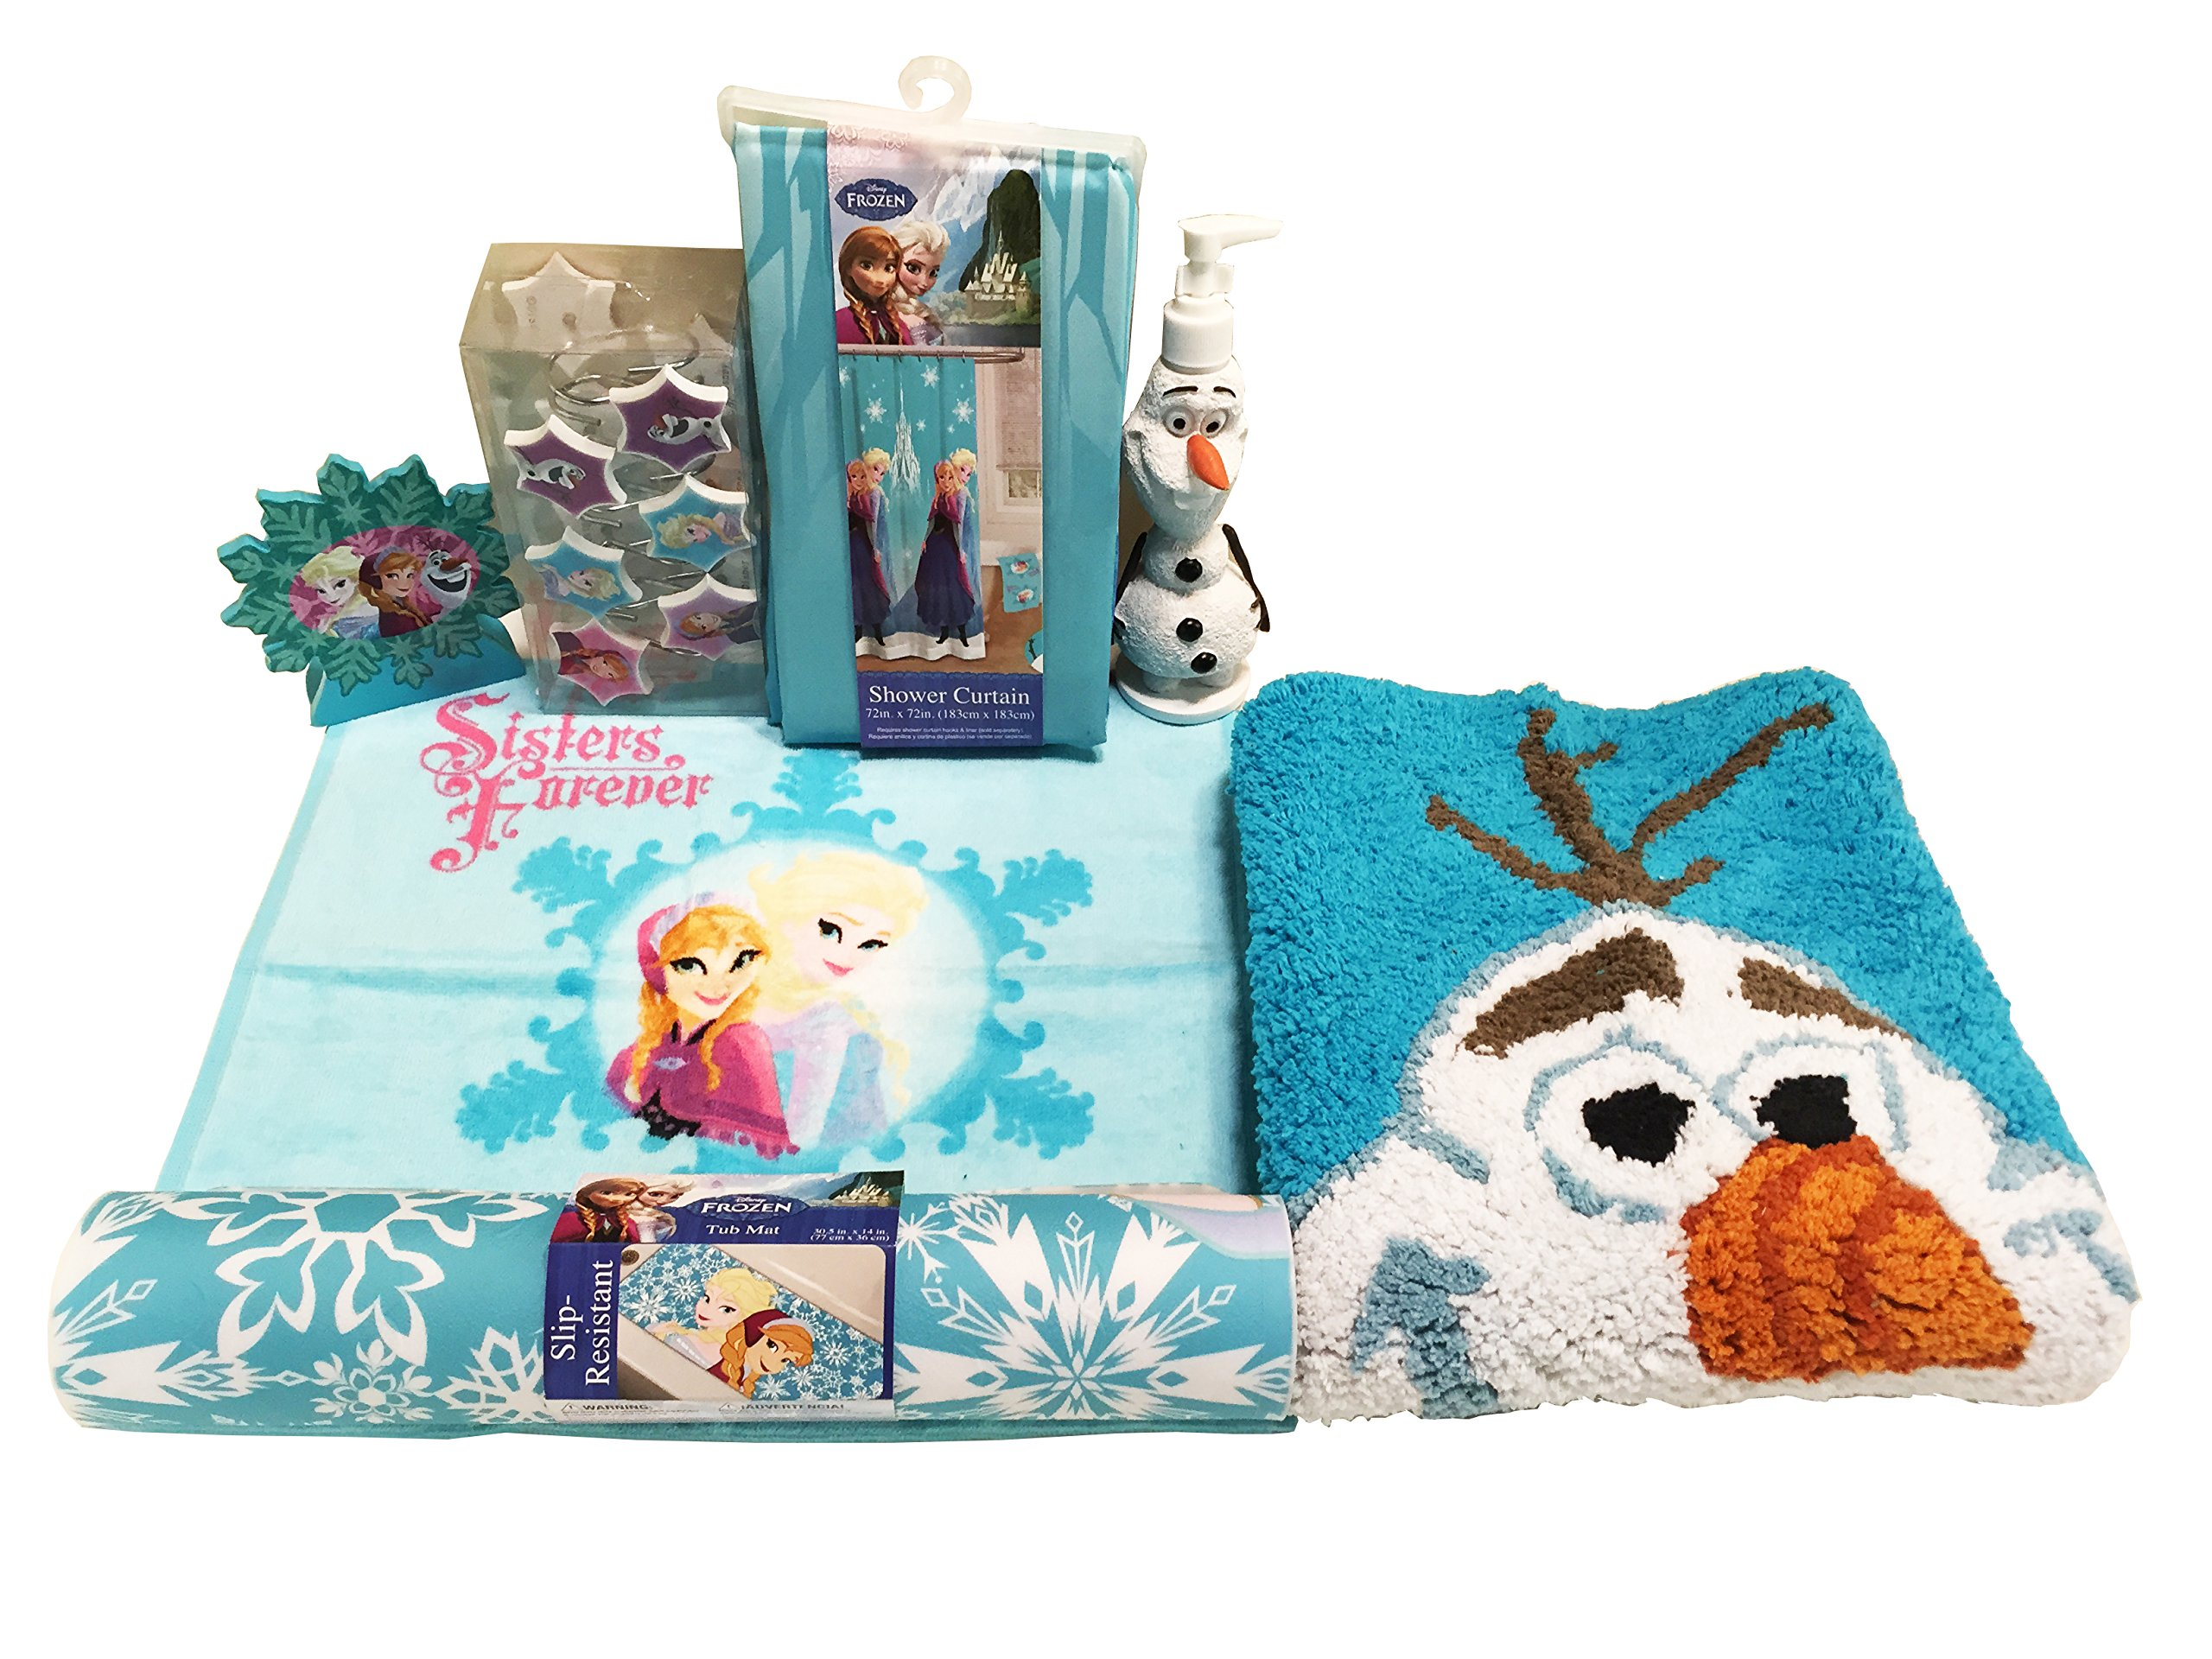 Disney Frozen Anna, Elsa, Olaf Bathroom Accessories Bundle of 7 Items! by Frozen